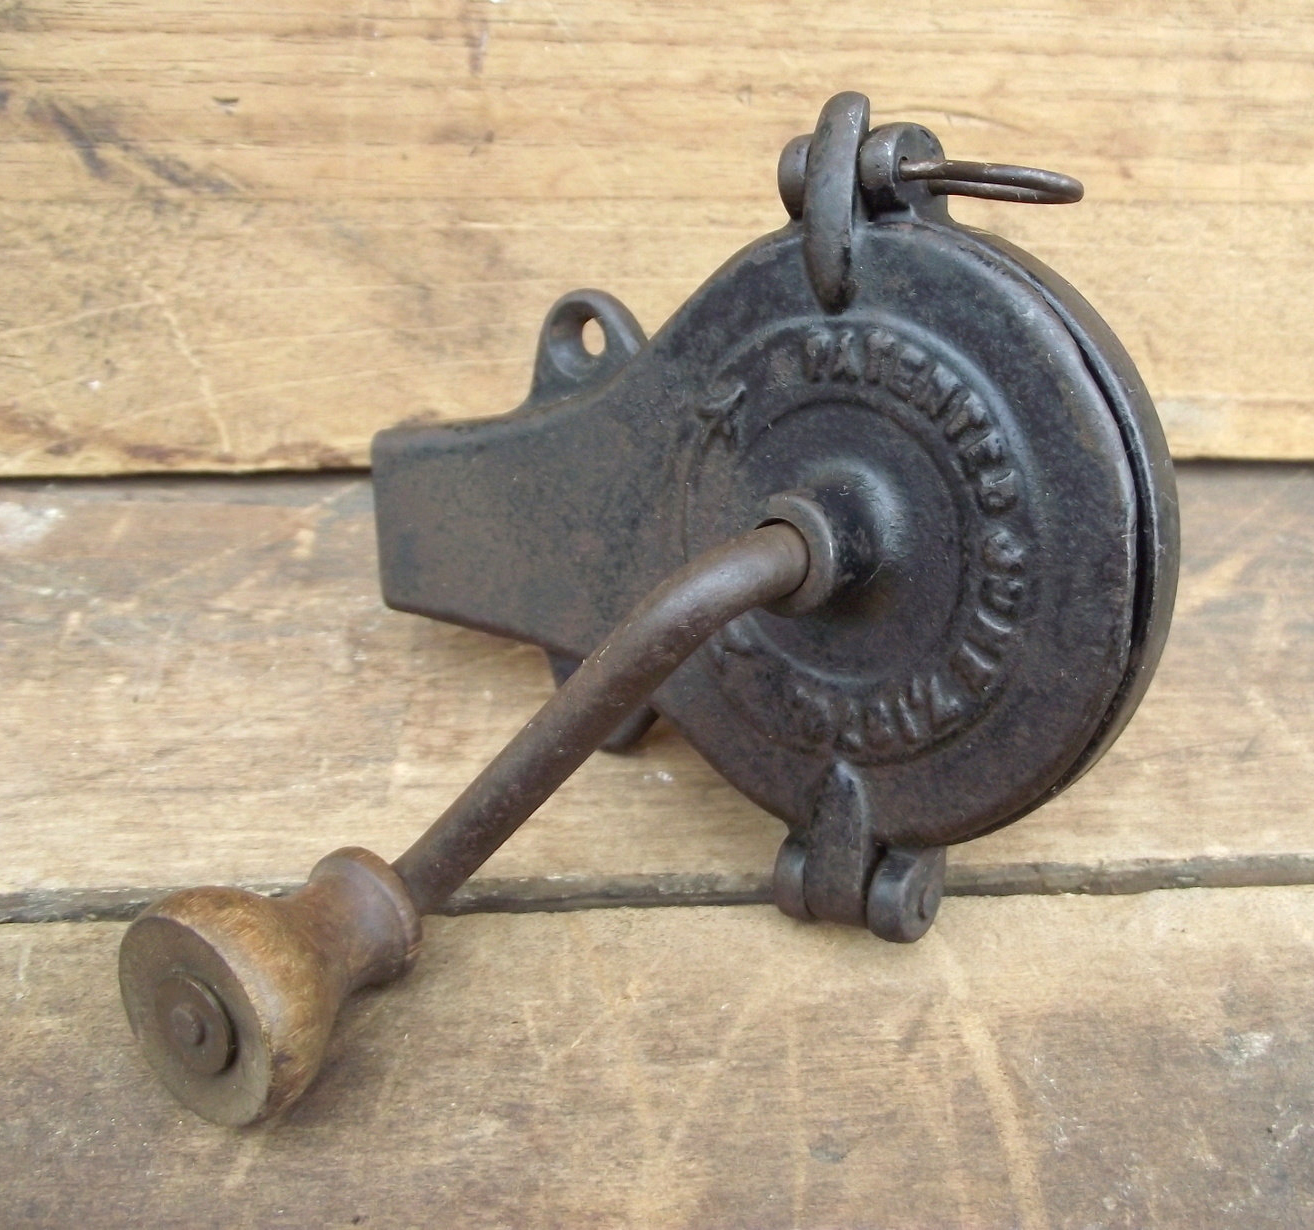 Patented Antique Nutmeg Grinder